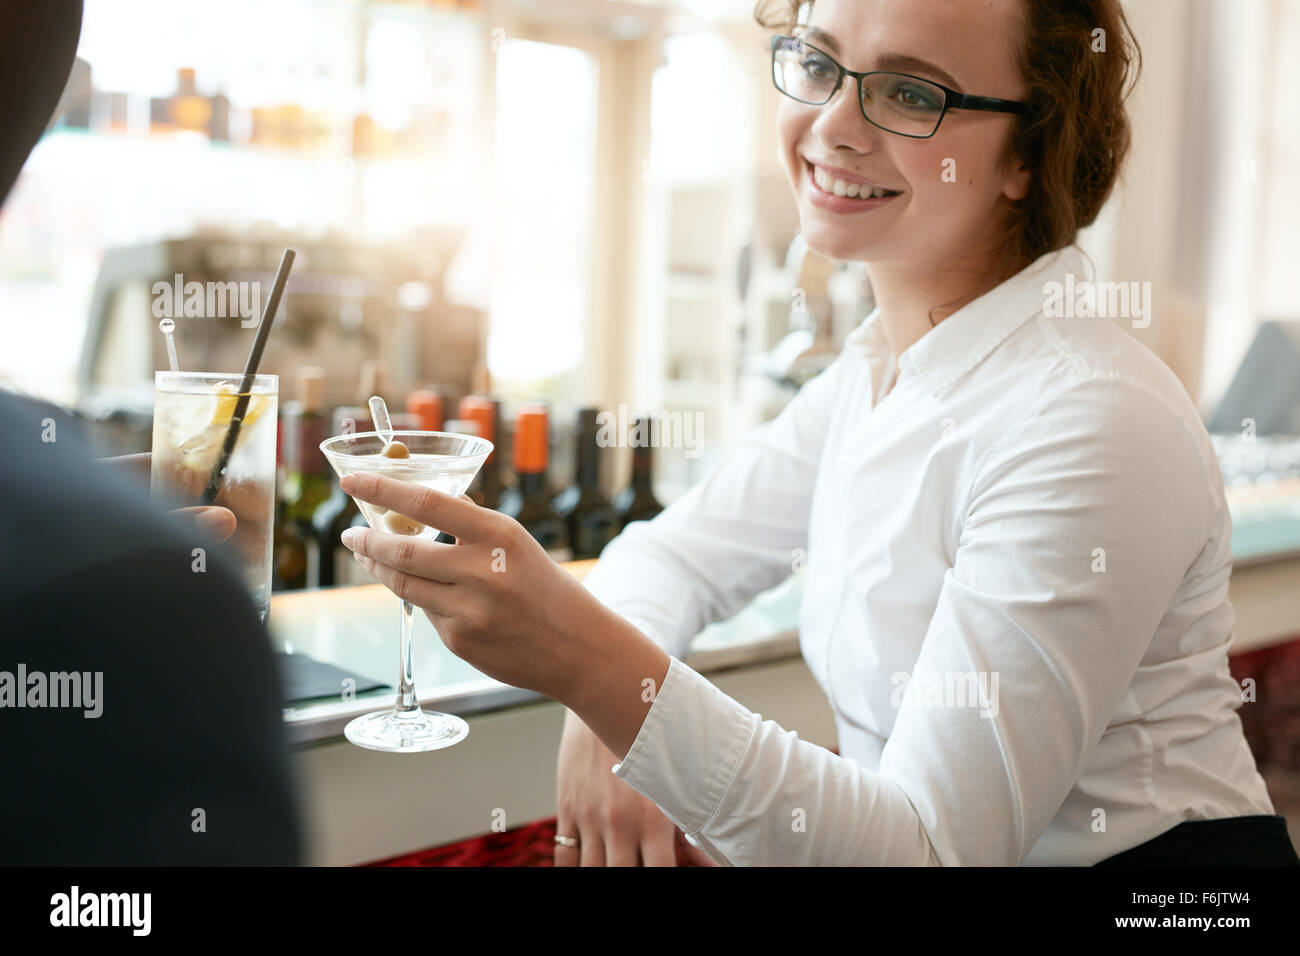 Young business woman toasting drinks with colleague at cafe. Caucasian businesswoman avec partenaire ayant un verre Photo Stock